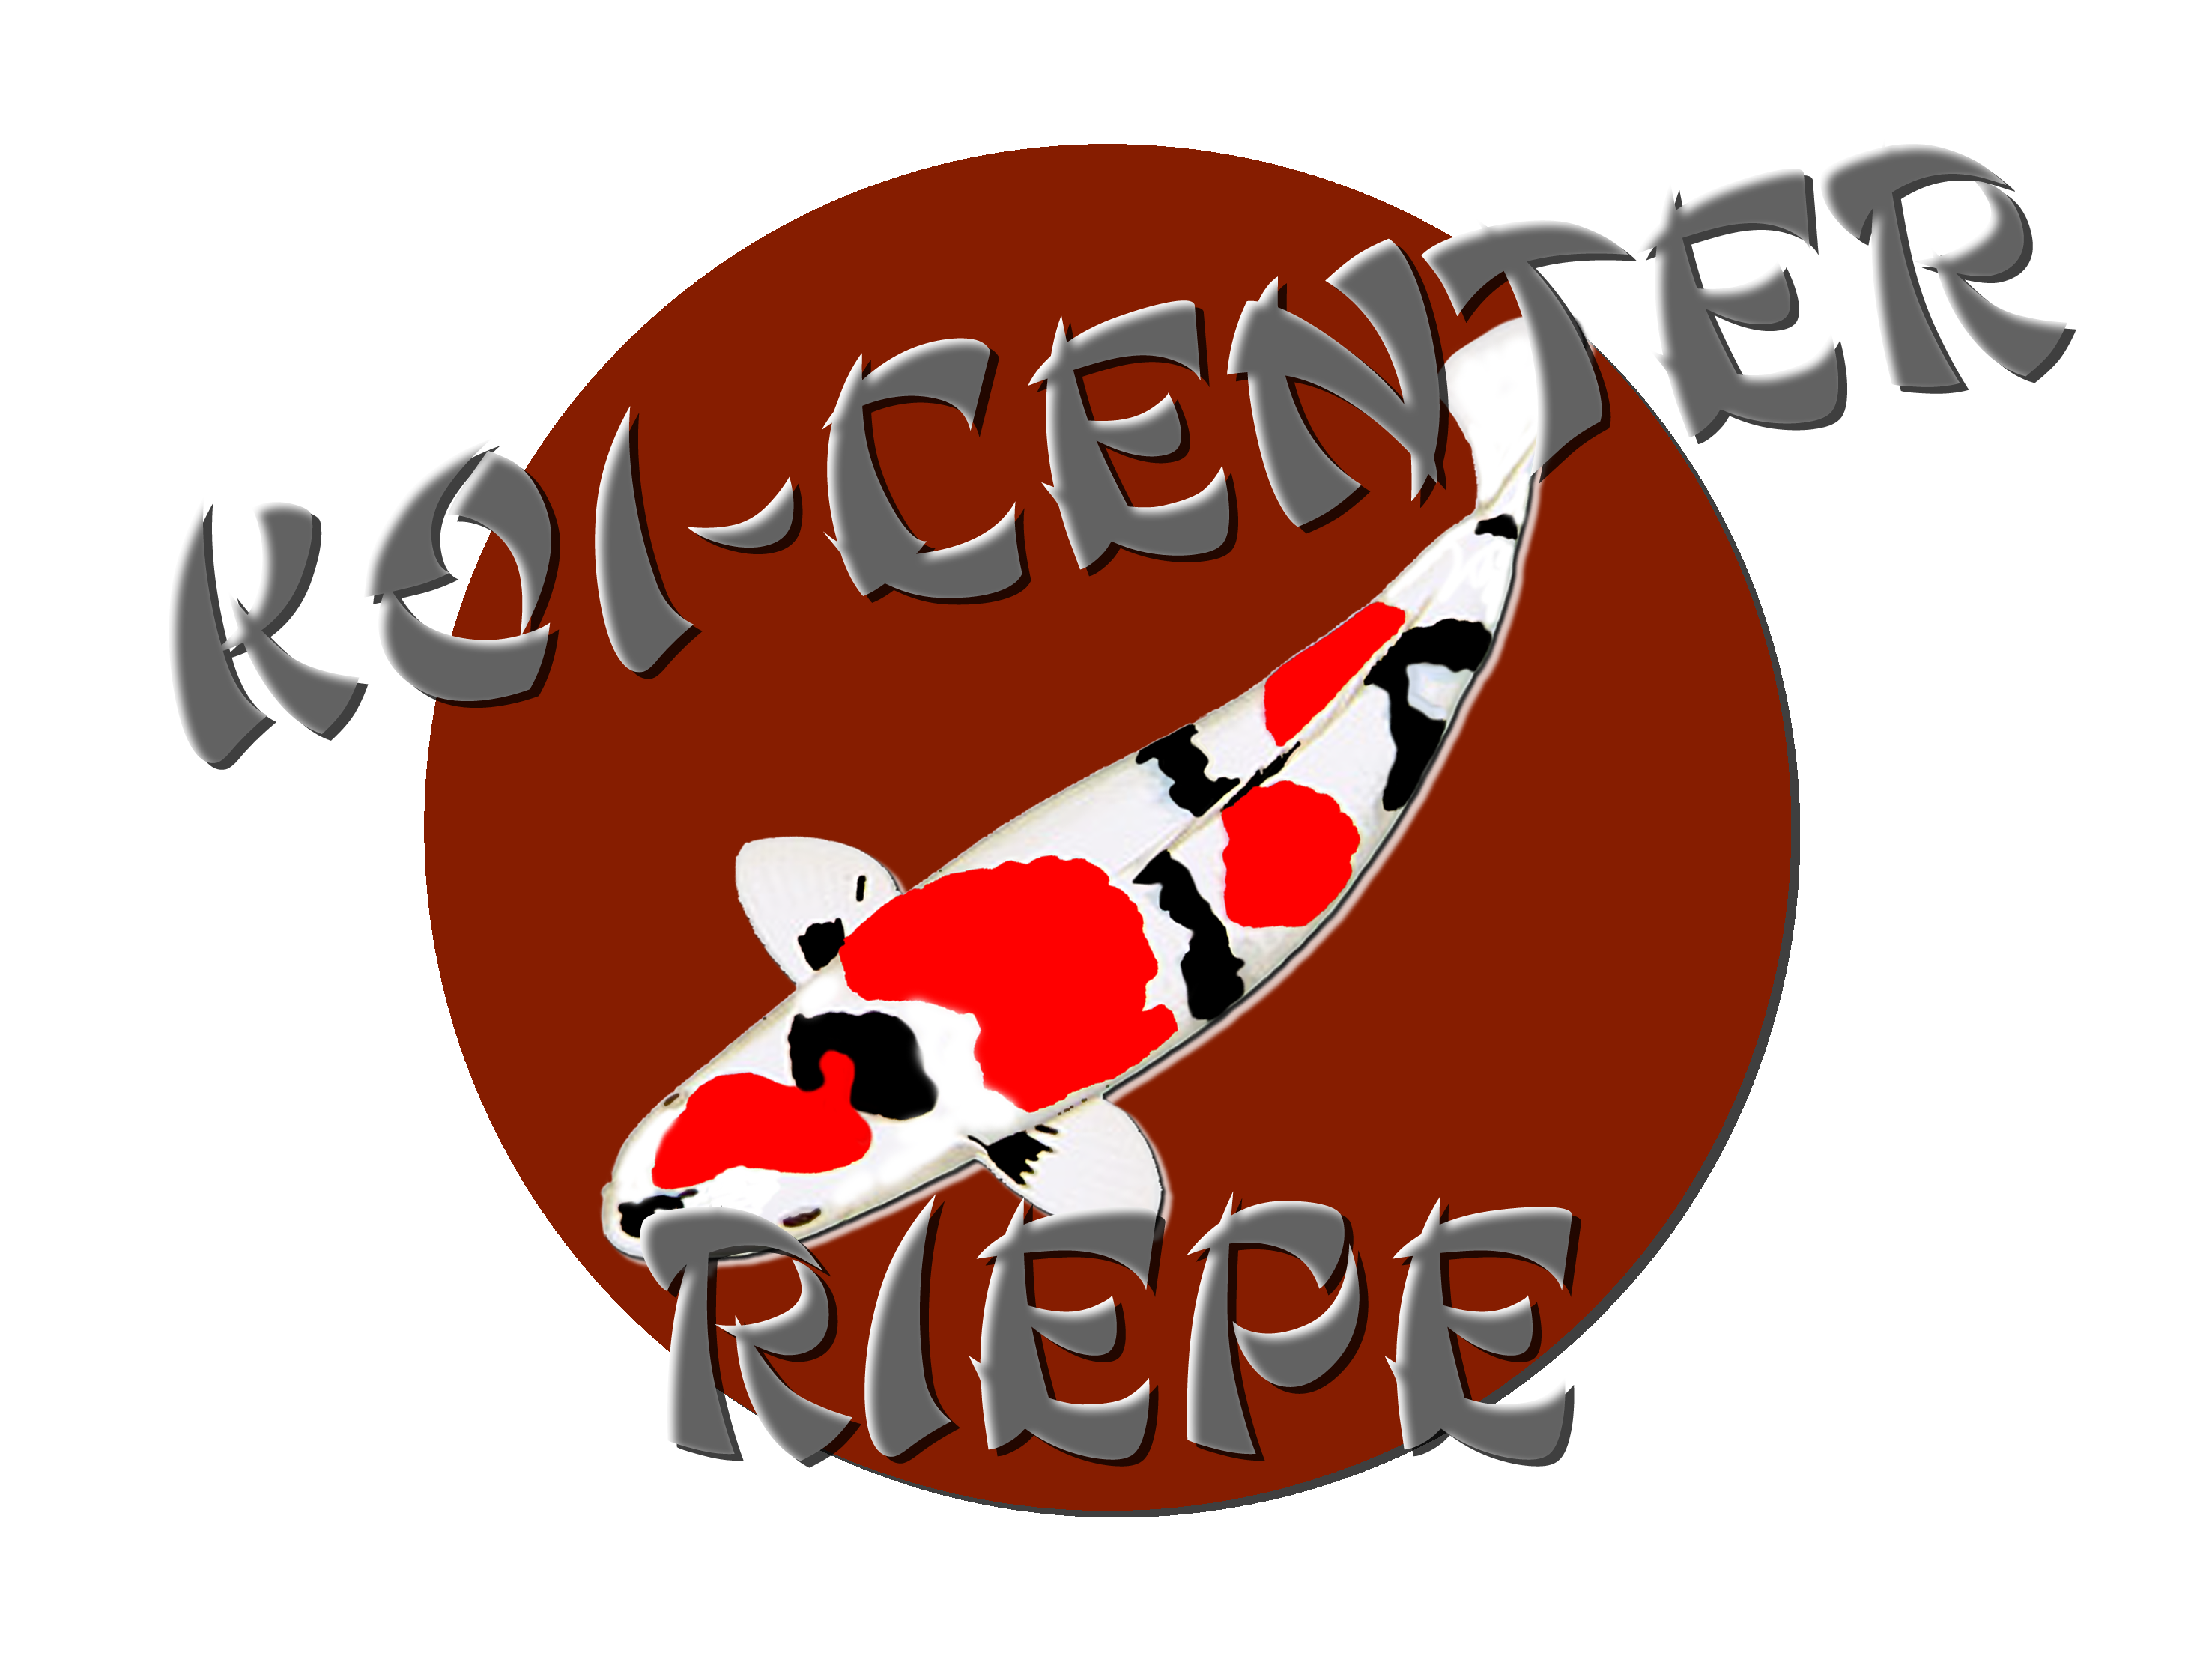 Koi-Center Riepe